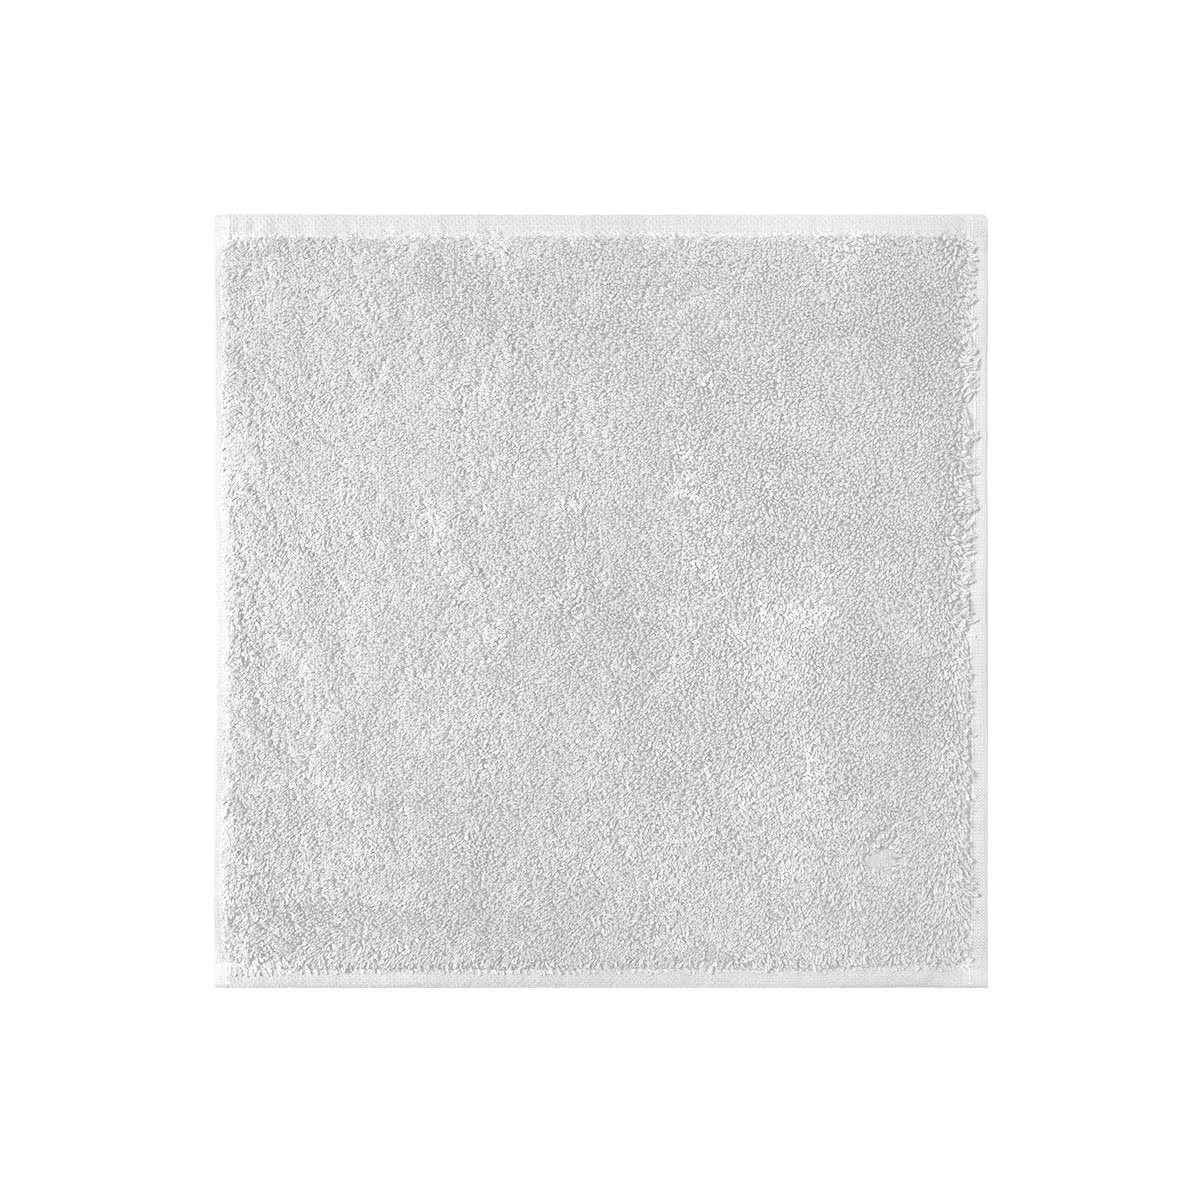 Etoile Silver Bath Collection by Yves Delorme | Fig Linens, Light gray bath linen, washcloth